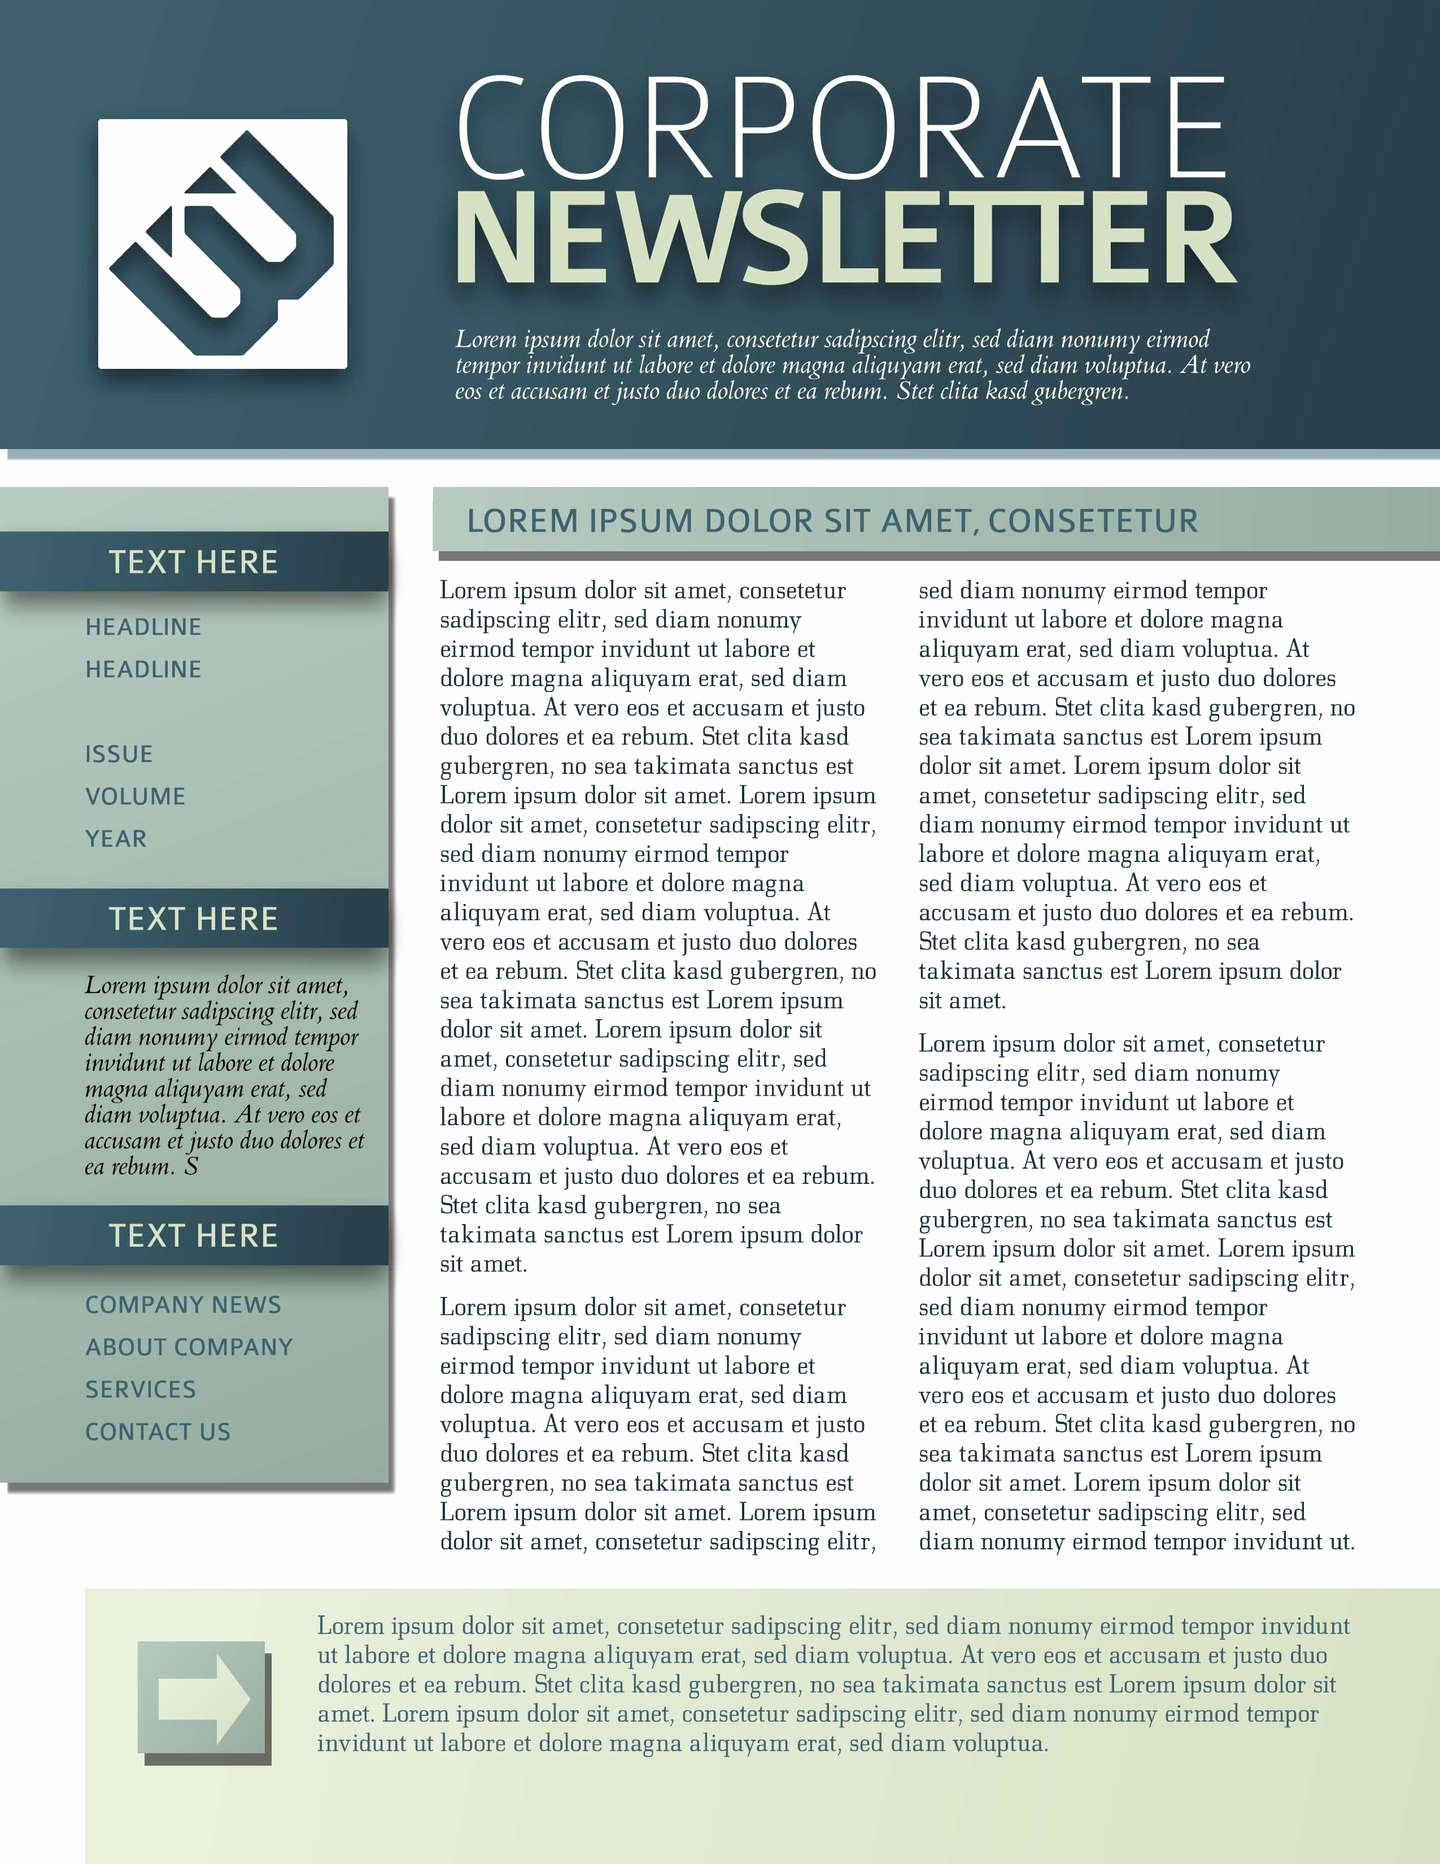 News Letter Templates In Word New Newsletter Templates In Word Portablegasgrillweber